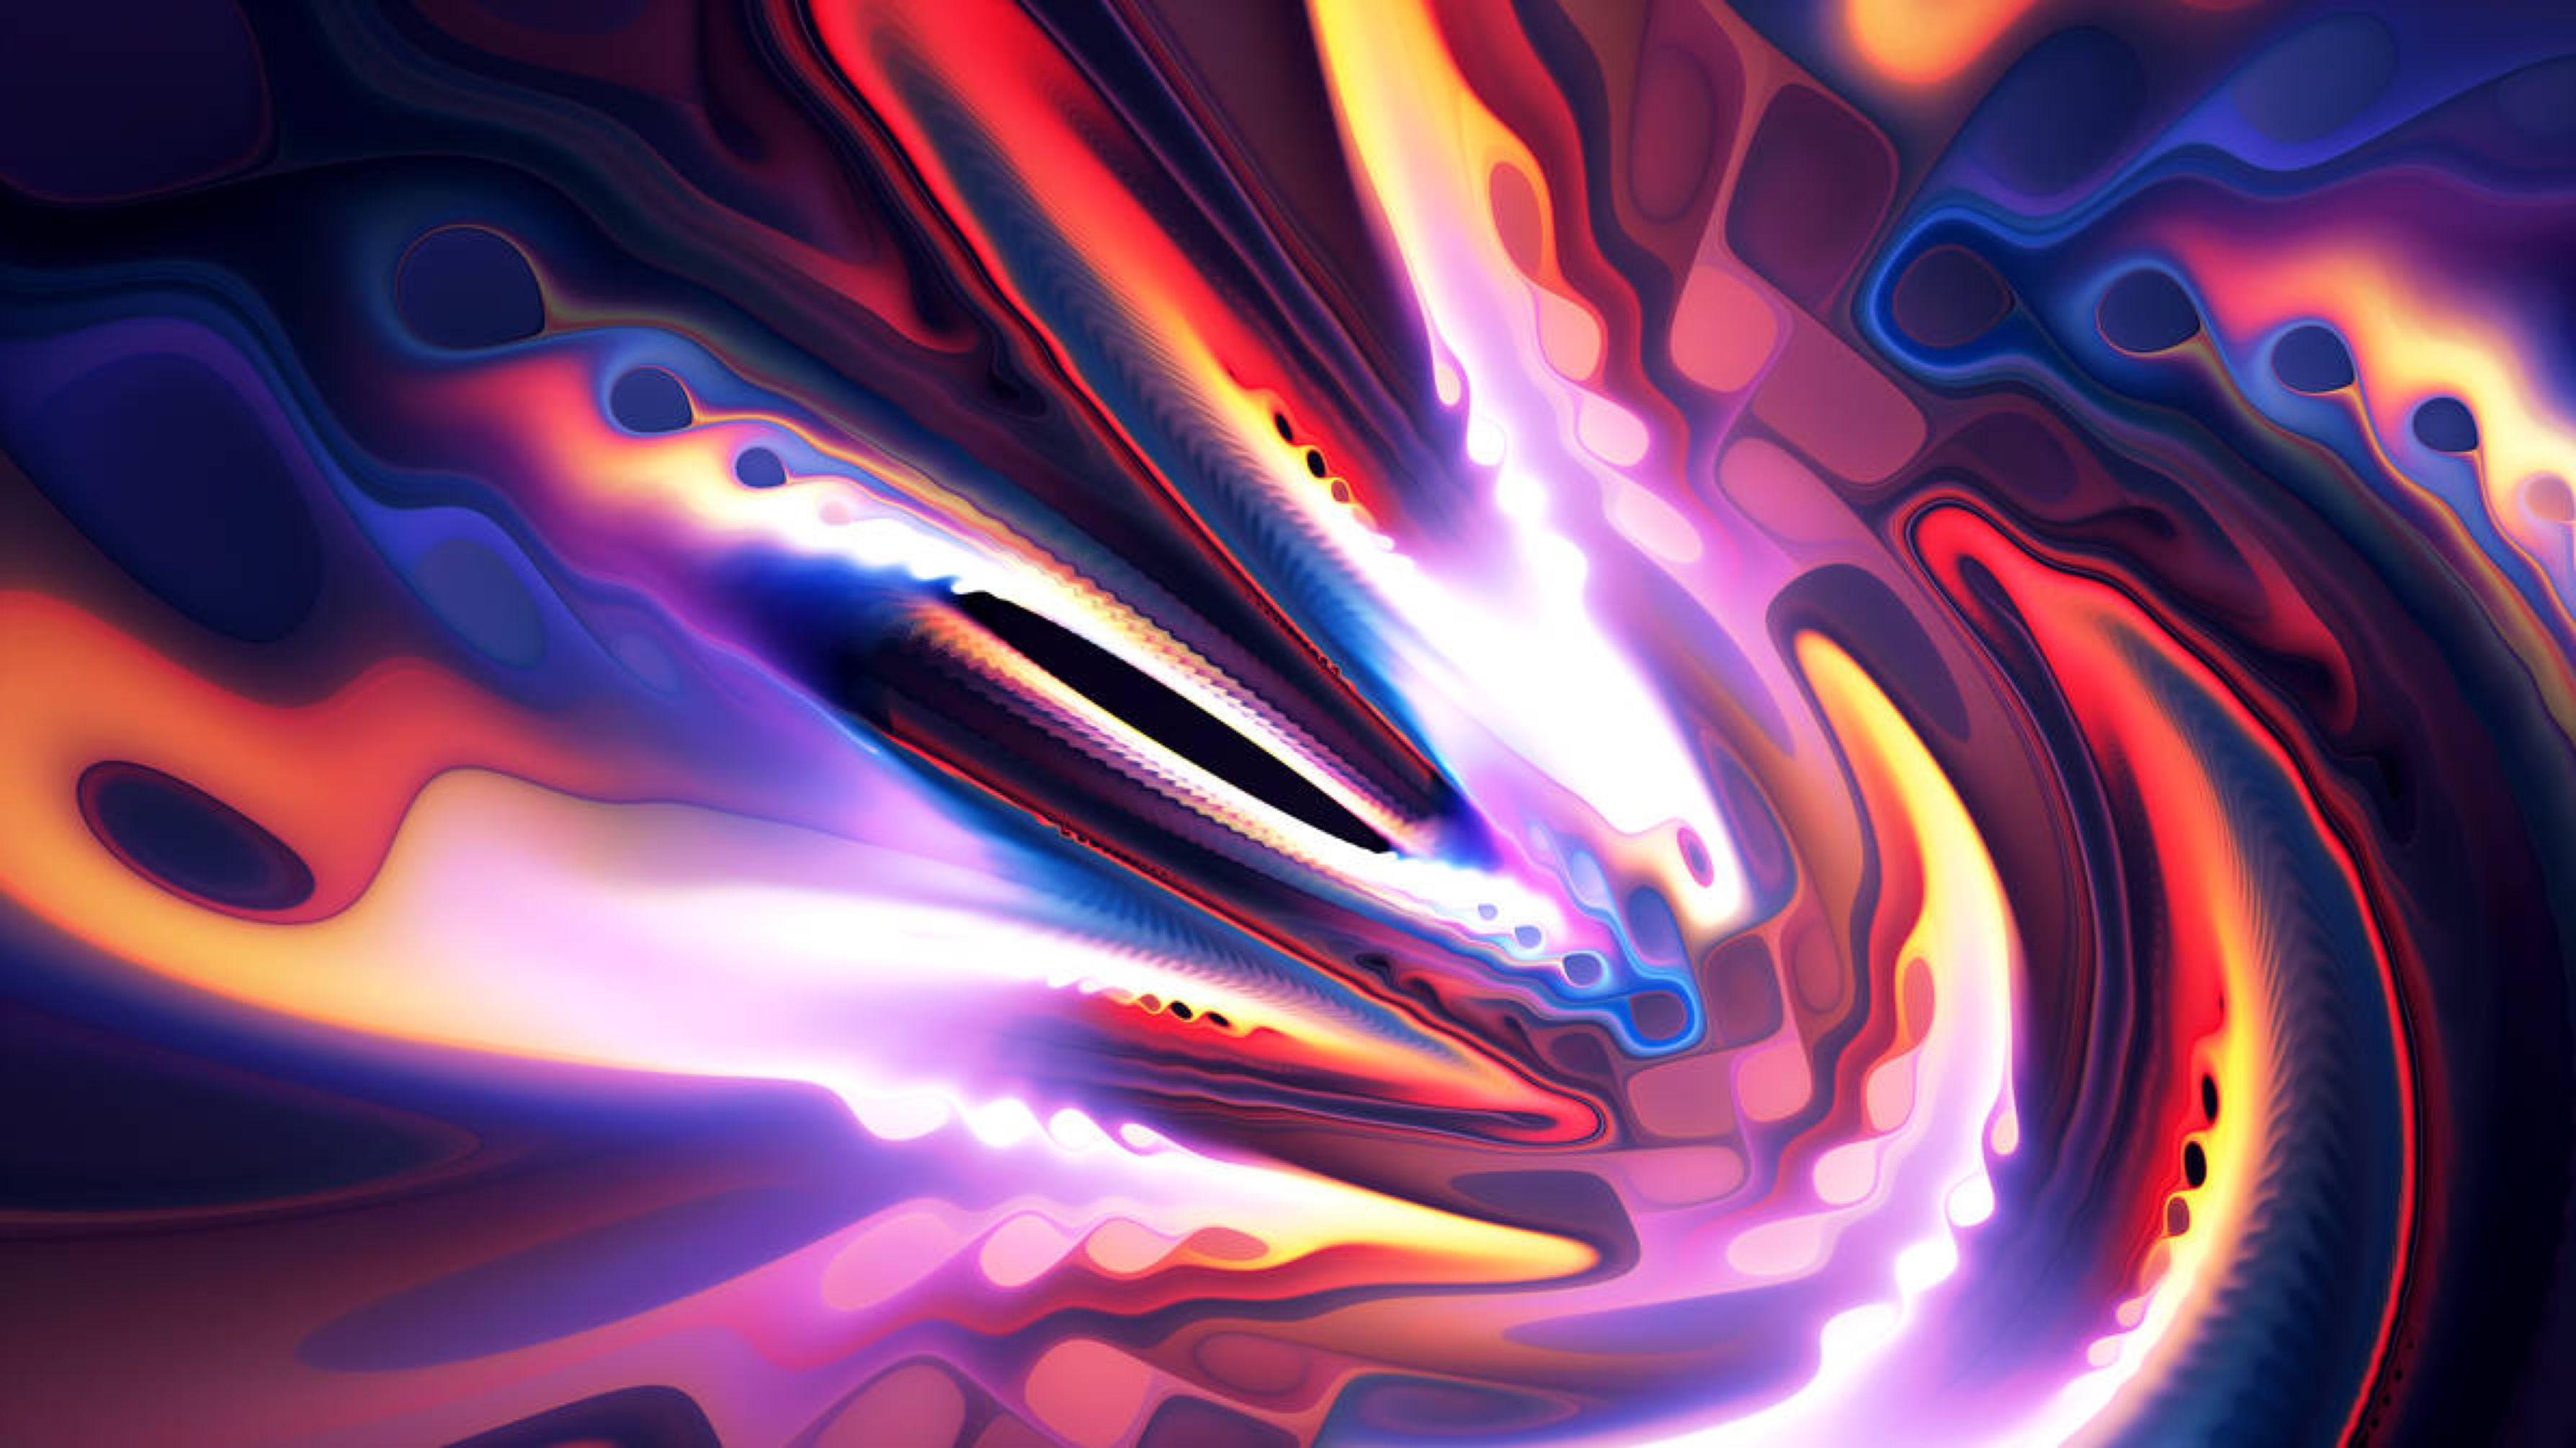 Gnyro By Senzune On Deviantart Abstract Abstract Wallpaper Art Wallpaper Hd wallpaper abstract neon fractal waves